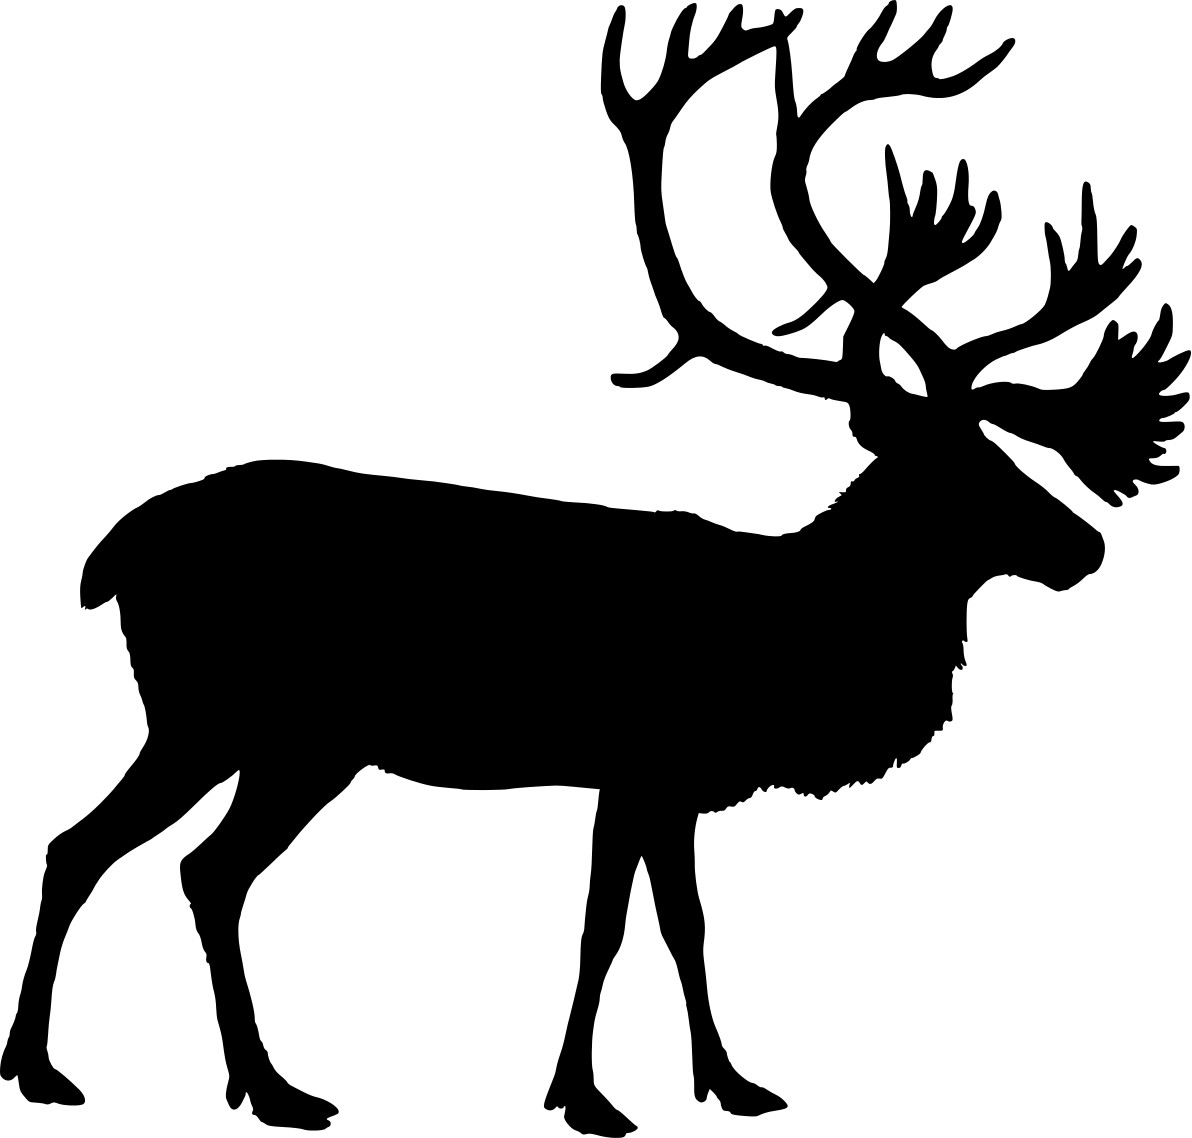 1192x1138 Best Photos Of Reindeer Head Silhouette Deer Within Png Fiscalreform